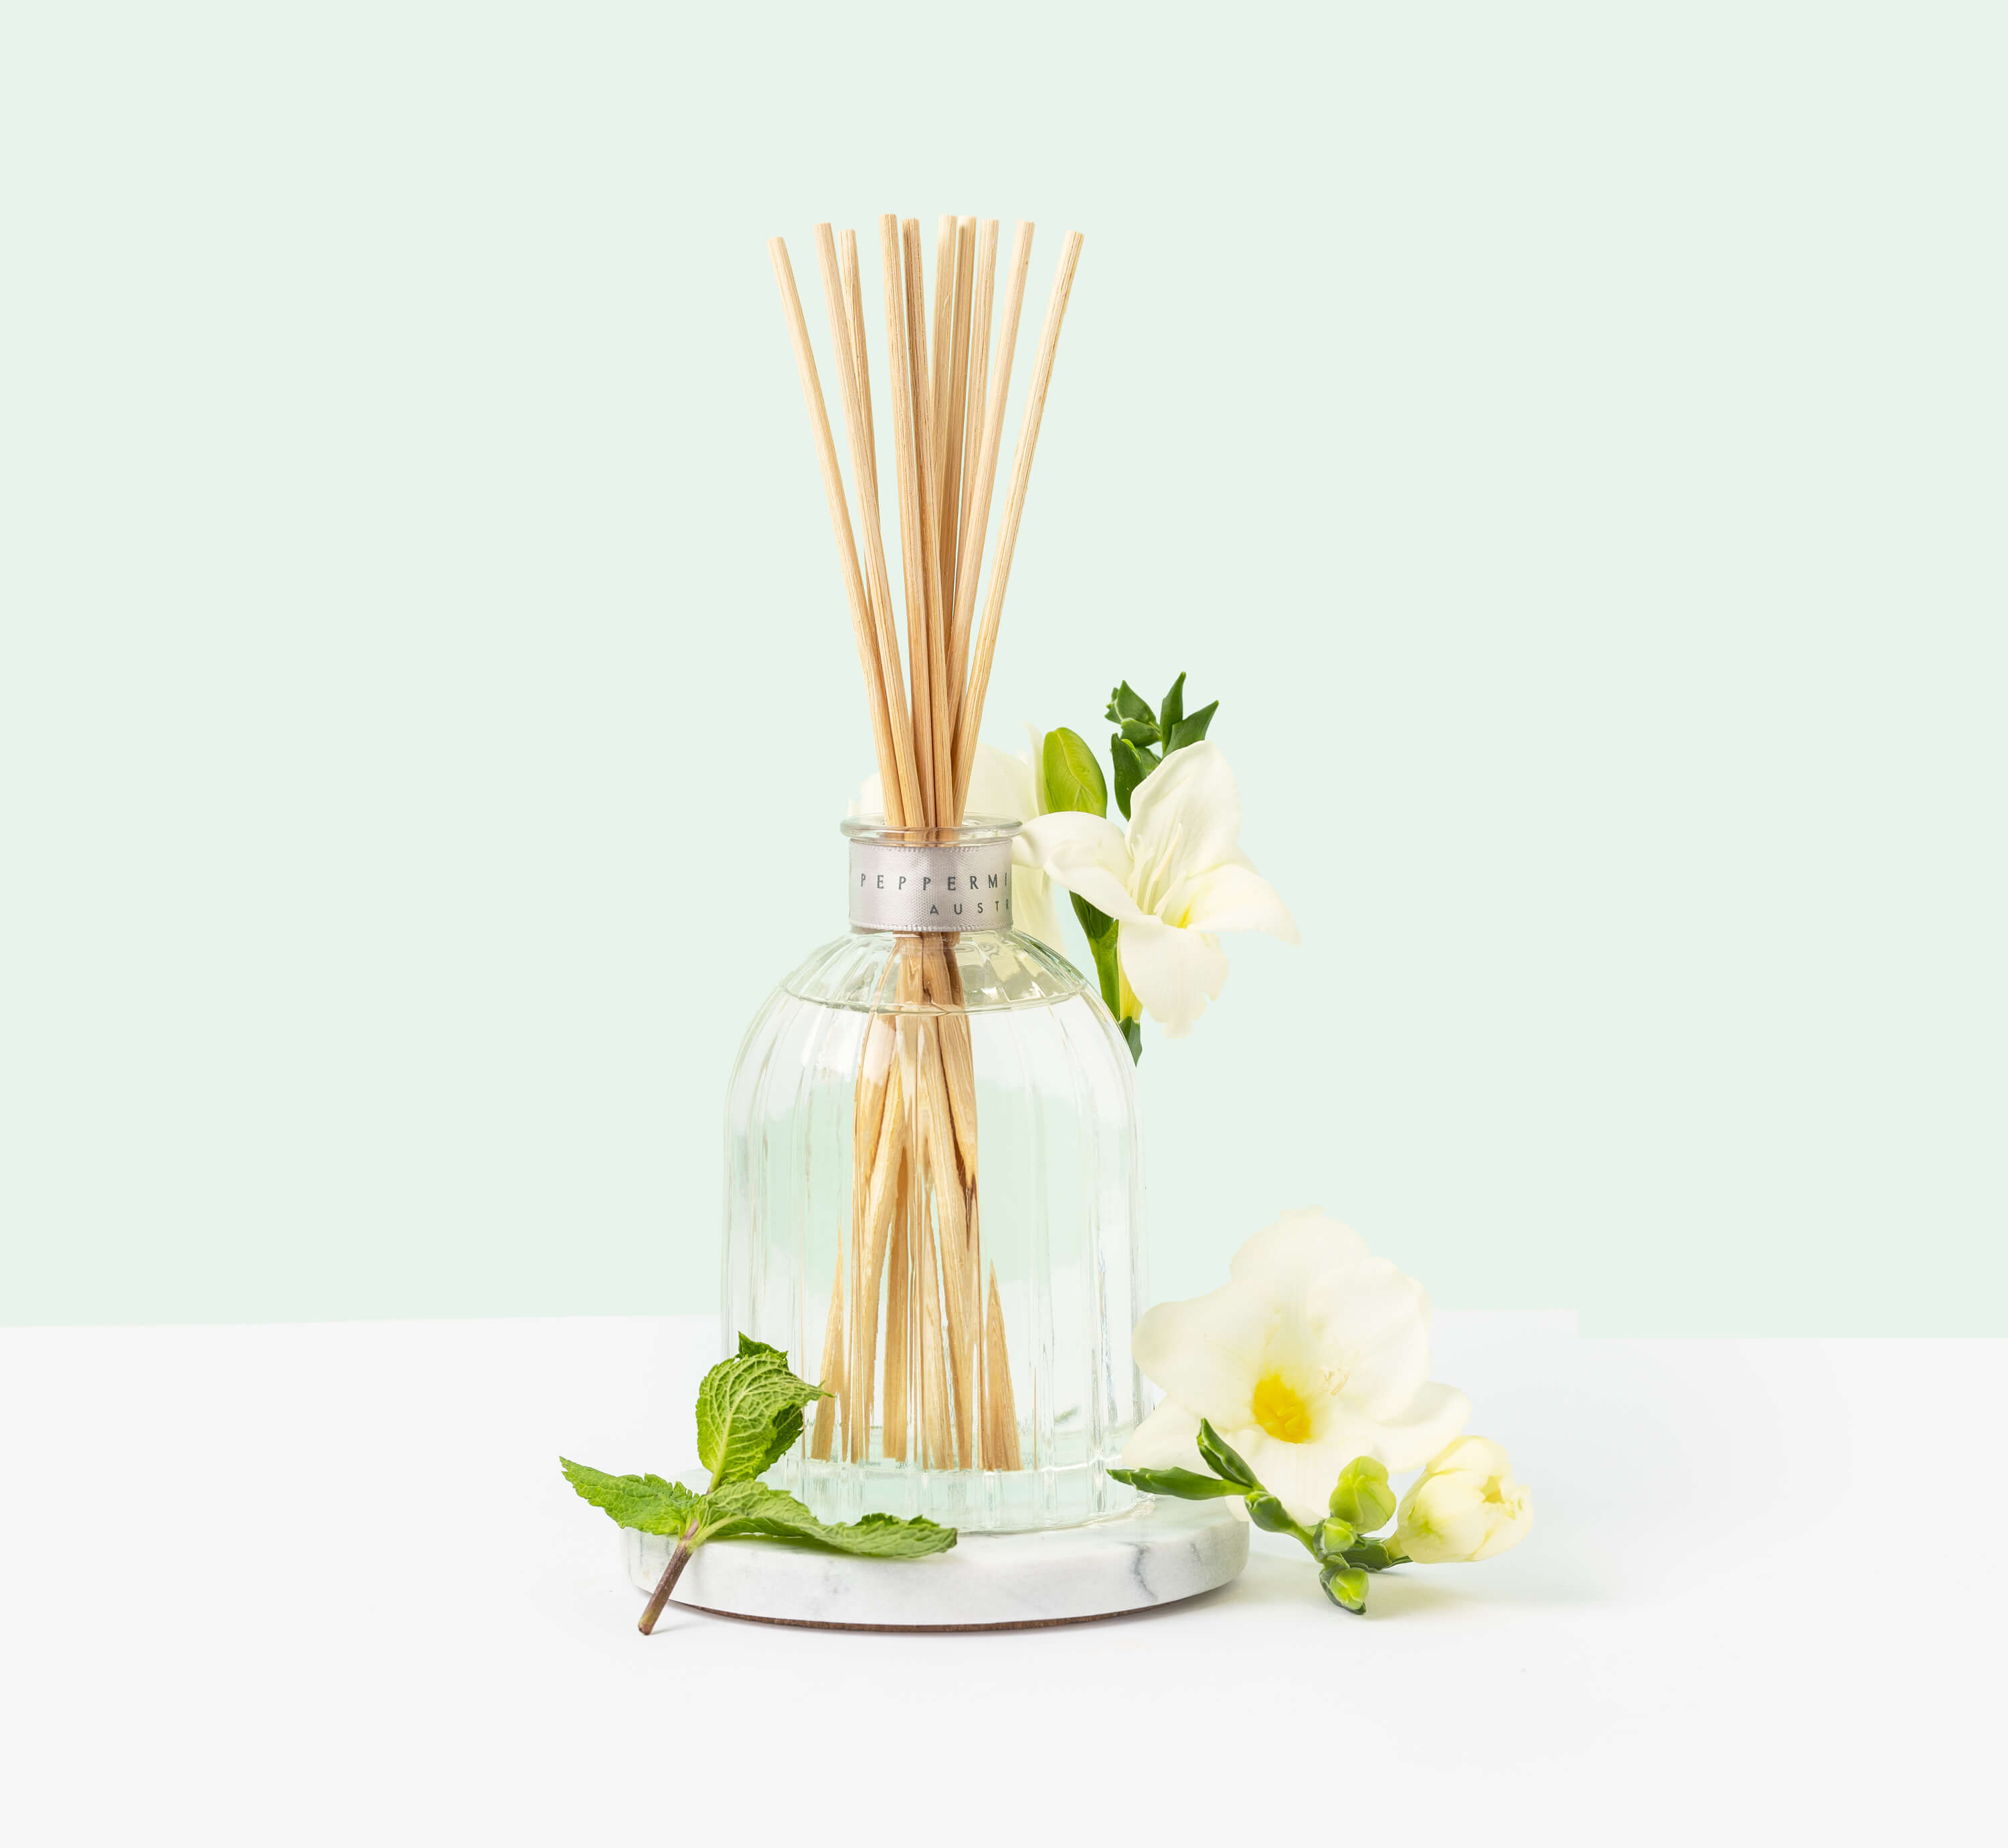 Peppermint Grove mint and jasmine reed diffuser